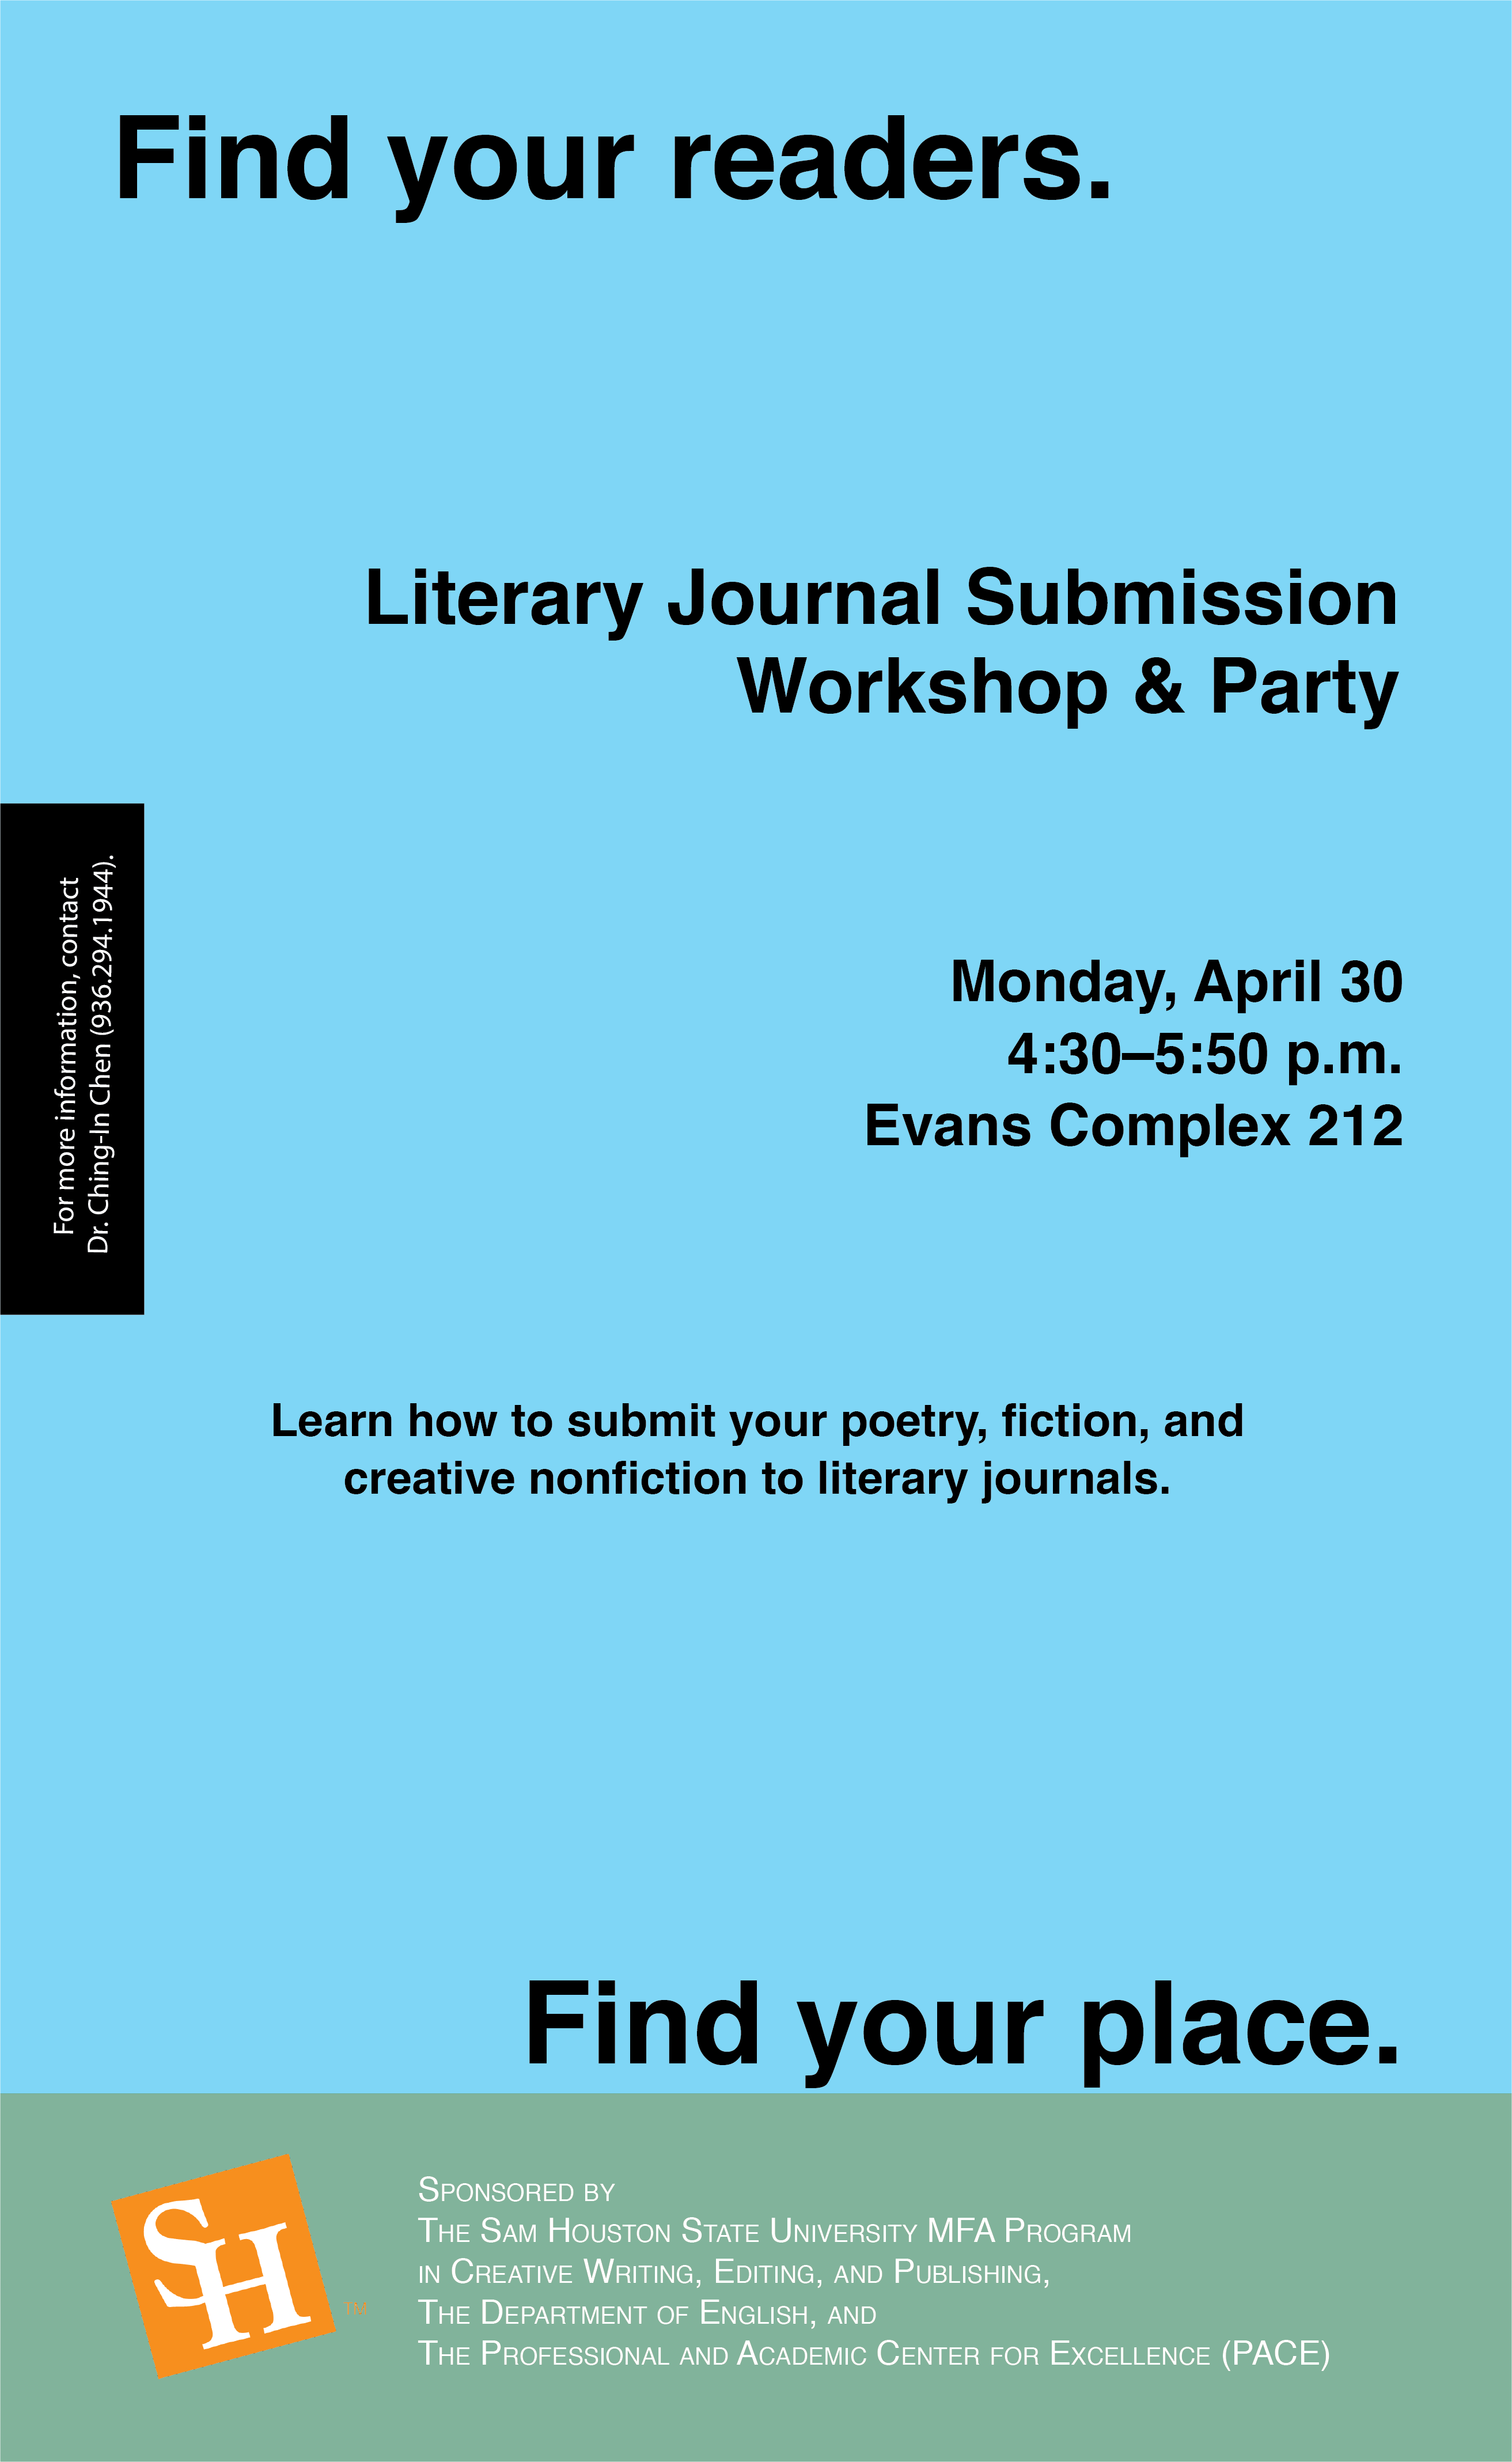 Literary Journal Submission Workshop